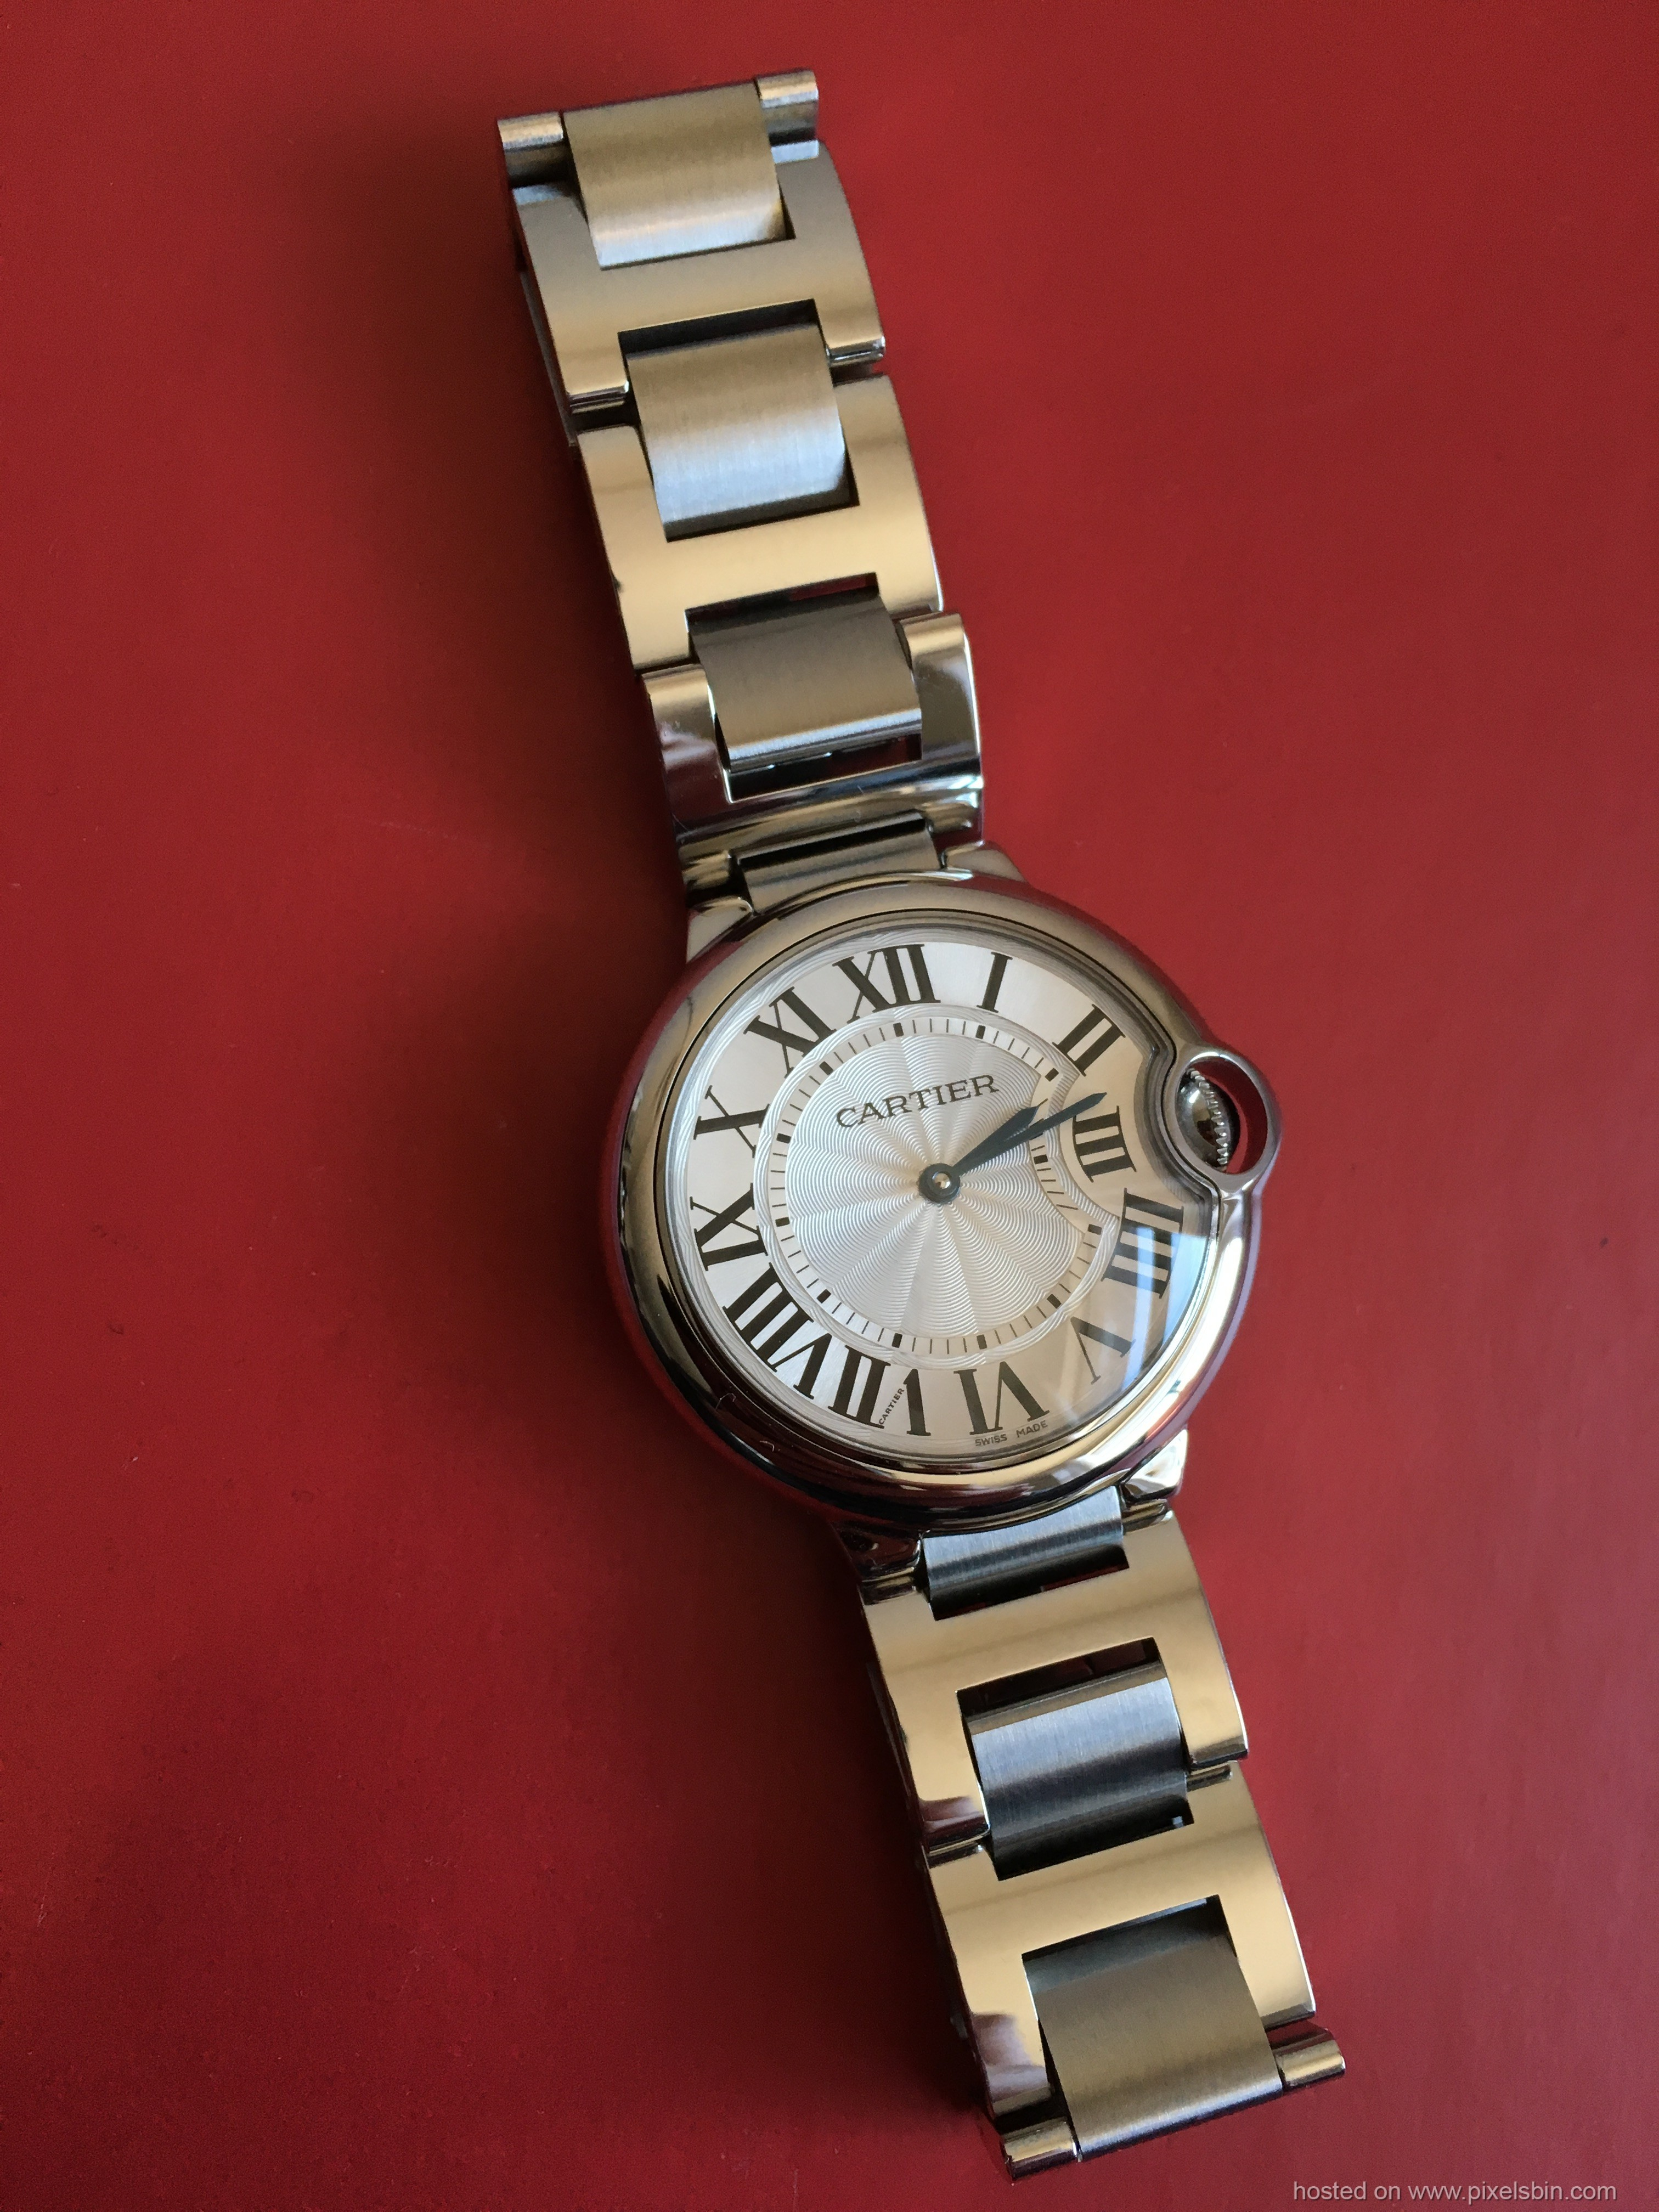 ... Santos and Ronde Solo. These are the watches that I have in my  collection currently and wanted to share fellow Cartier Fans. 54251f7f435